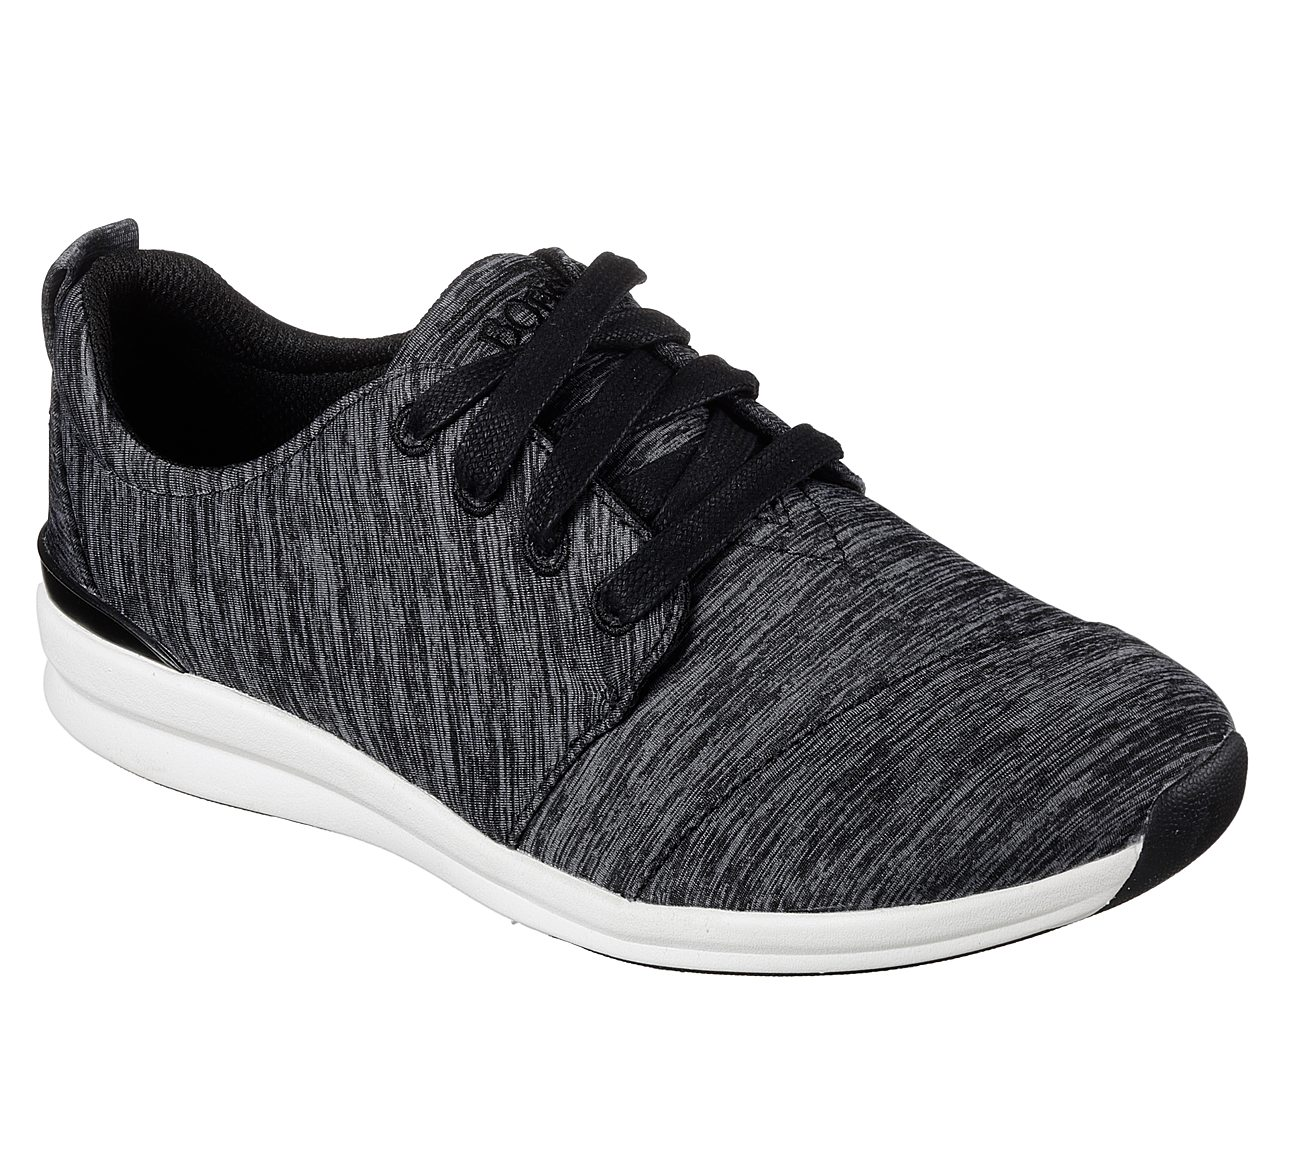 Bobs Phresh - Top Spot BOBS from SKECHERS